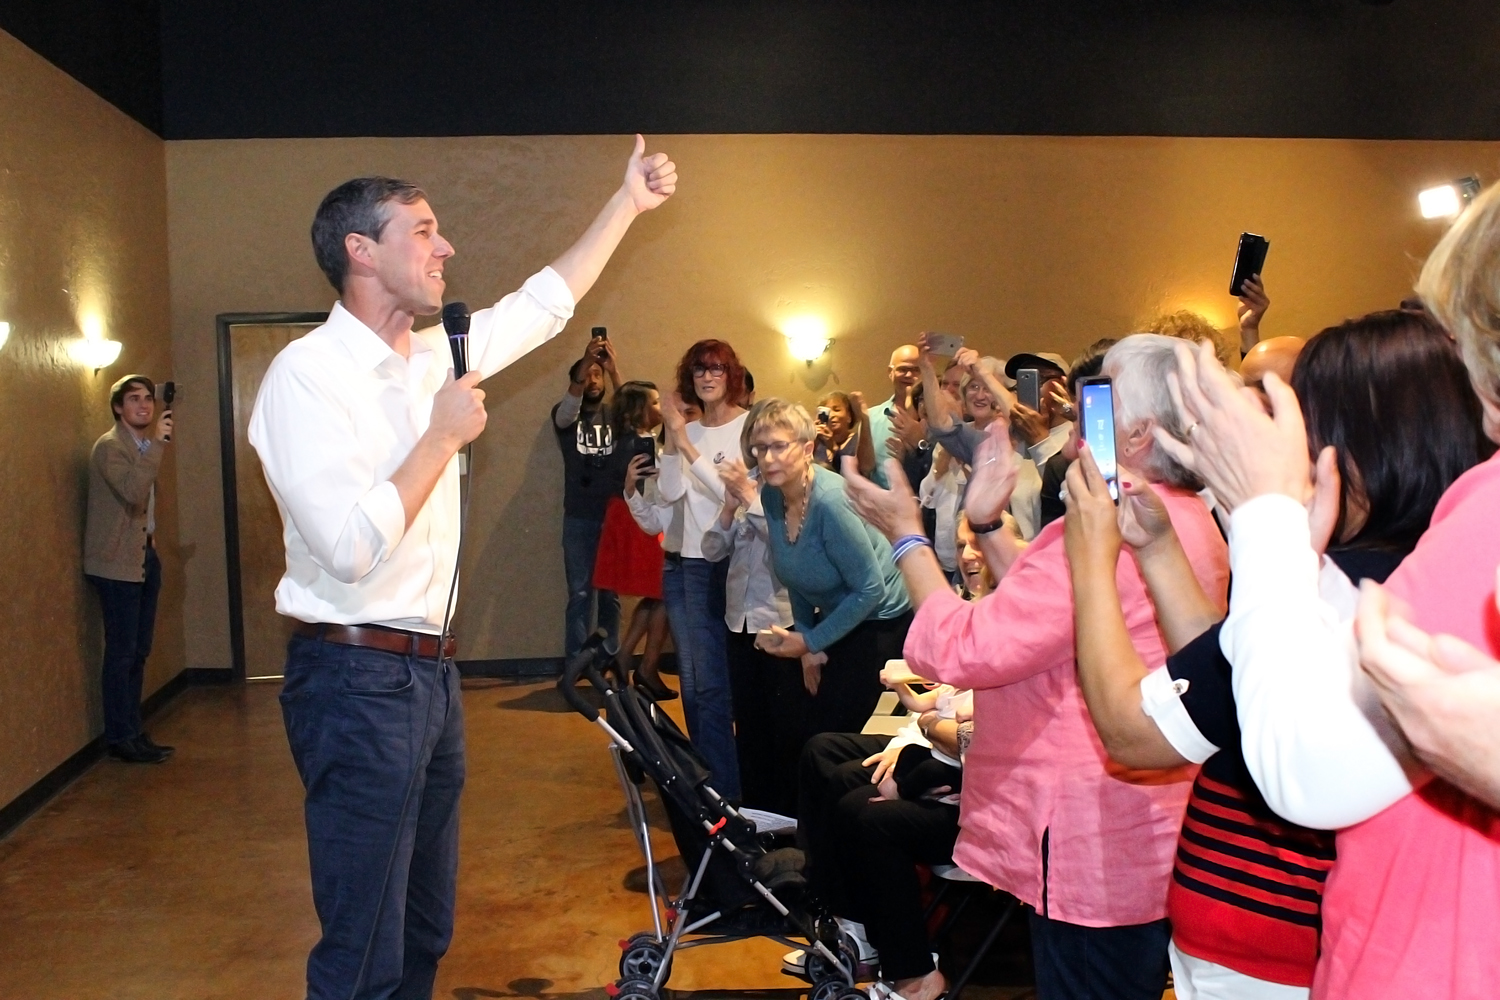 Beto Returning To North Texas After Surpassing Cruz With